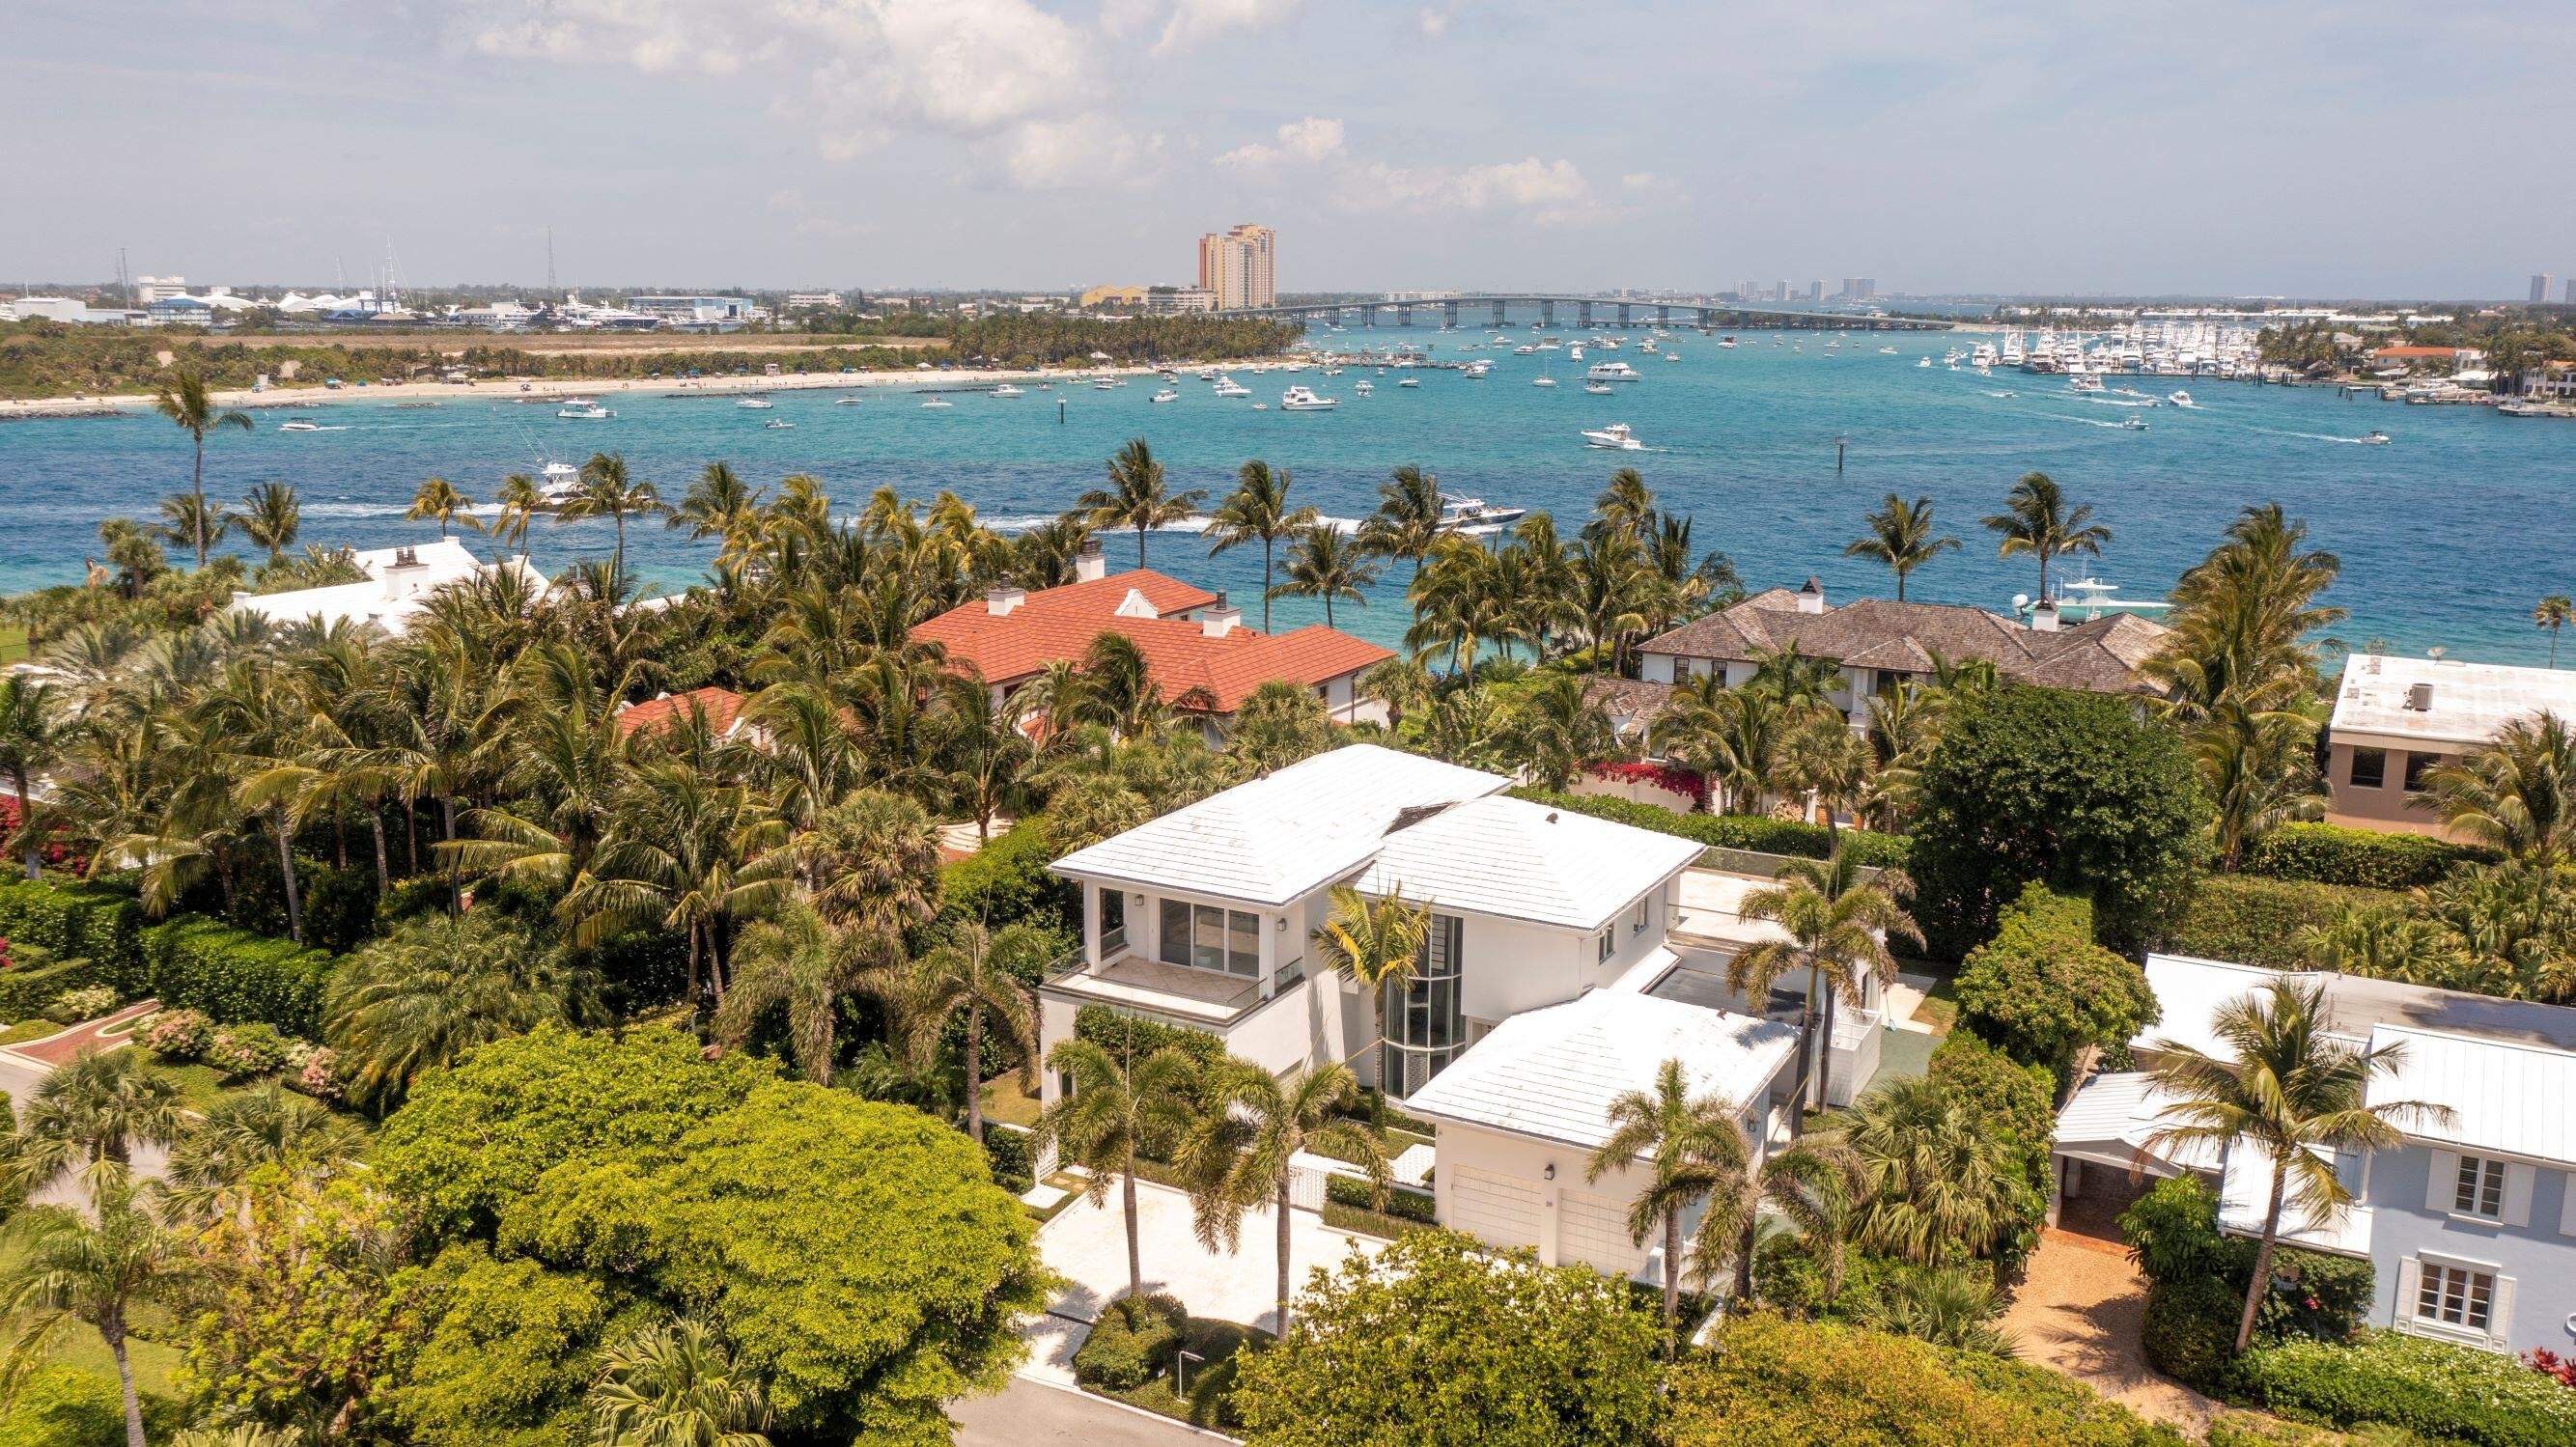 Mid-Century Modern gem on the North End of Palm Beach steps to the Ocean beach and the Intracoastal Waterway. This chic 5 bedroom, and 5.1 bath residence features over 7,000 total square feet, floor to ceiling windows that bring in the light, a large water view terrace overlooking the pool, stunning glass staircase, high ceilings throughout, gourmet eat-in-kitchen, spacious master suite with large closets, 2 car garage, mature manicured landscaping, and centralized lighting and audio system. All 5 bedrooms are ensuite. Stylish, glass edged upper deck with water view, perfect for entertaining. Ocean beach steps away at the top of Indian Road DISCLAIMER: Information published or otherwise provided by the listing company and its representatives including but not limited to prices, measurements, square footages, lot sizes, calculations and statistics are deemed reliable but are not guaranteed and are subject to errors, omissions or changes without notice. All such information should be independently verified by any prospective purchaser or seller. Parties should perform their own due diligence to verify such information prior to a sale or listing. Listing company expressly disclaims any warranty or representation regarding such information. Prices published are either list price, sold price, and/or last asking price. The listing company participates in the Multiple Listing Service and IDX. The properties published as listed and sold are not necessarily exclusive to listing company and may be listed or have sold with other members of the Multiple Listing Service. Transactions where listing company represented both buyers and sellers are calculated as two sales. The listing company's marketplace is all of the following: Vero Beach, Town of Orchid, Indian River Shores, Town of Palm Beach, West Palm Beach, Manalapan Beach, Point Manalapan, Hypoluxo Island, Ocean Ridge, Gulf Stream, Delray Beach, Highland Beach, Boca Raton, East Deerfield Beach, Hillsboro Beach, Hillsboro Shores, East Pompano Beach, Lighthouse Point, Sea Ranch Lakes and Fort Lauderdale. Cooperating brokers are advised that in the event of a Buyer default, no commission will be paid to a cooperating Broker on the Deposits retained by the Seller. No commissions are paid to any cooperating broker until title passes or upon actual commencement of a lease. Some affiliations may not be applicable to certain geographic areas. If your property is currently listed with another broker, please disregard any solicitation for services. Copyright 2021 by the listing company. All Rights Reserved.